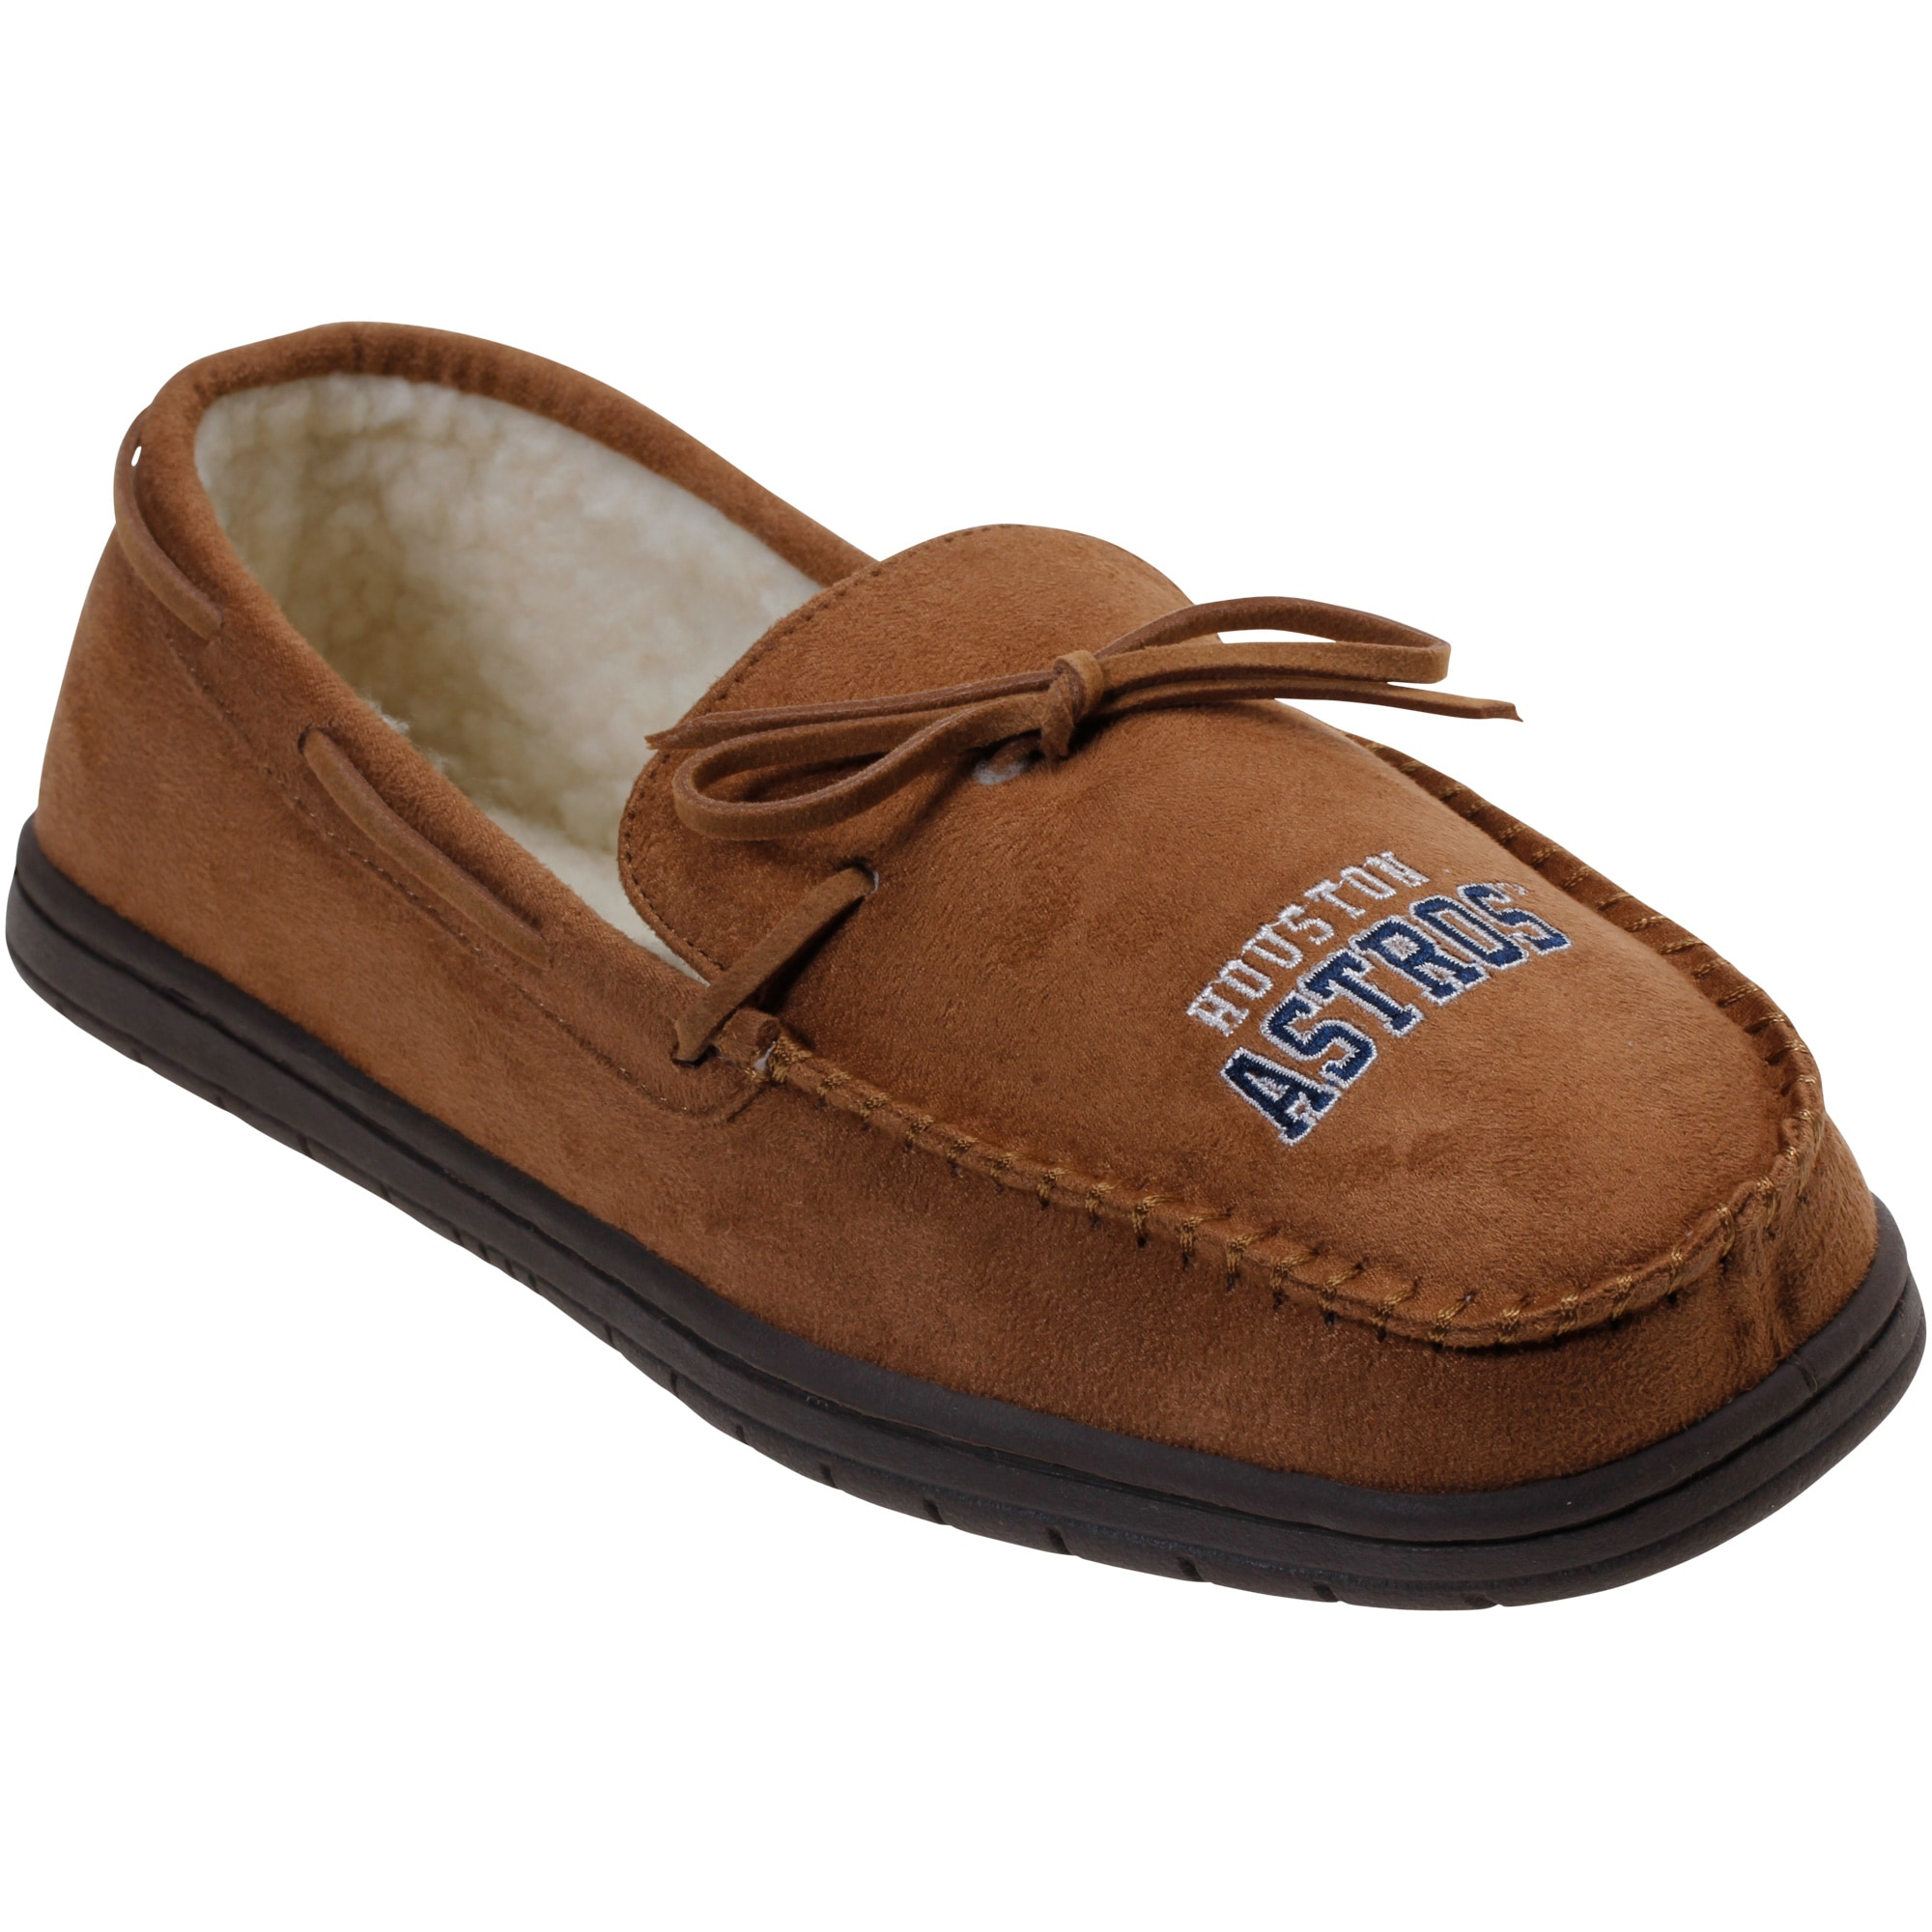 Houston Astros Moccasin Slippers